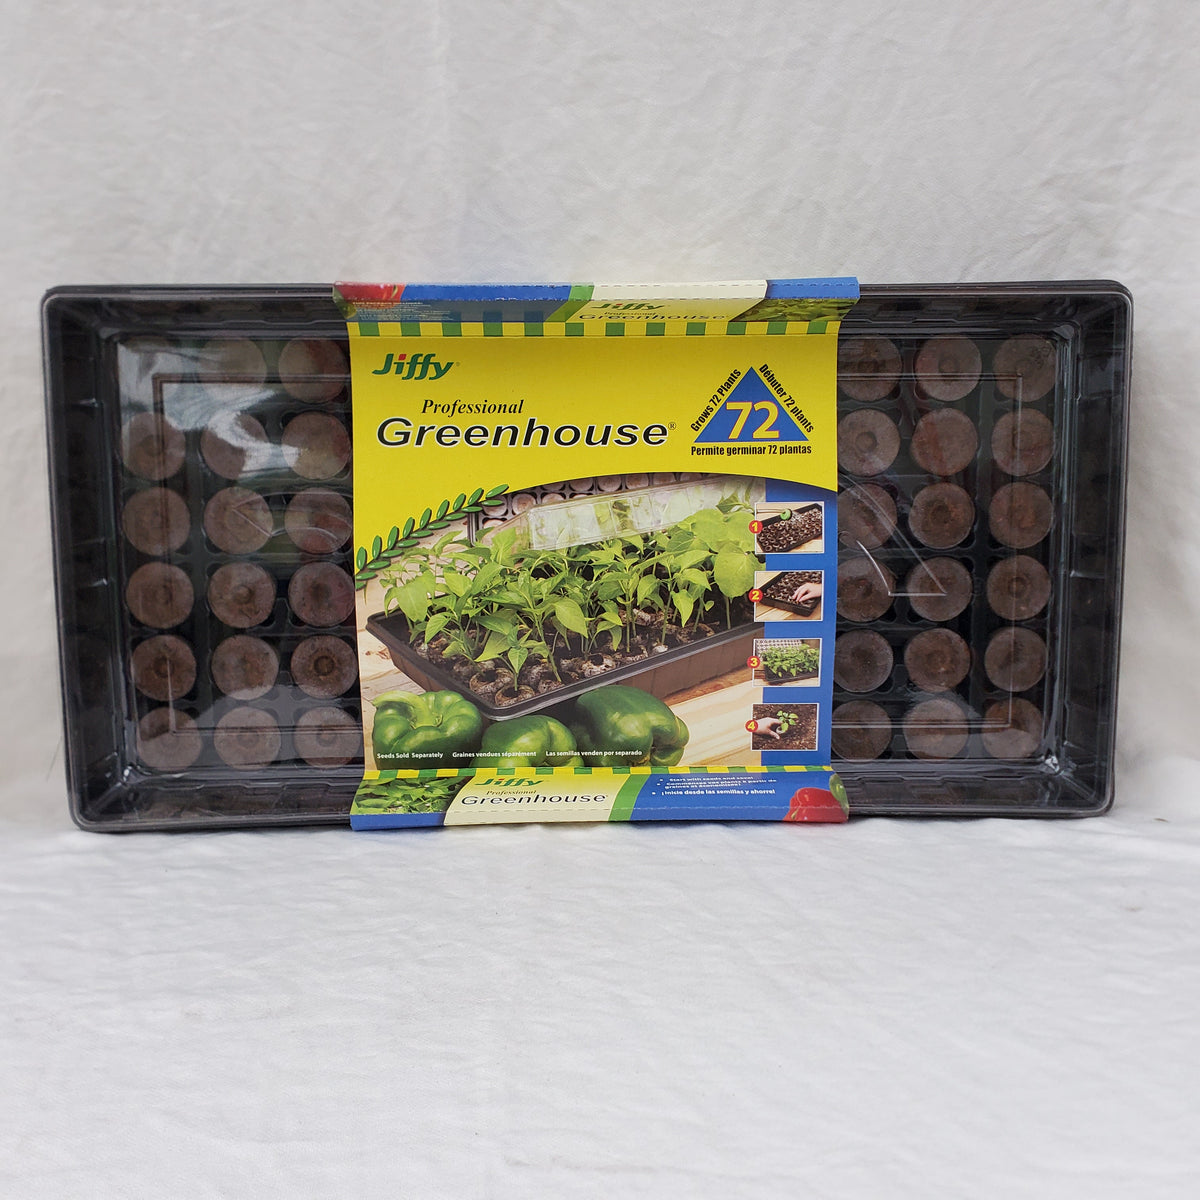 Jiffy Professional Greenhouse 72 pot